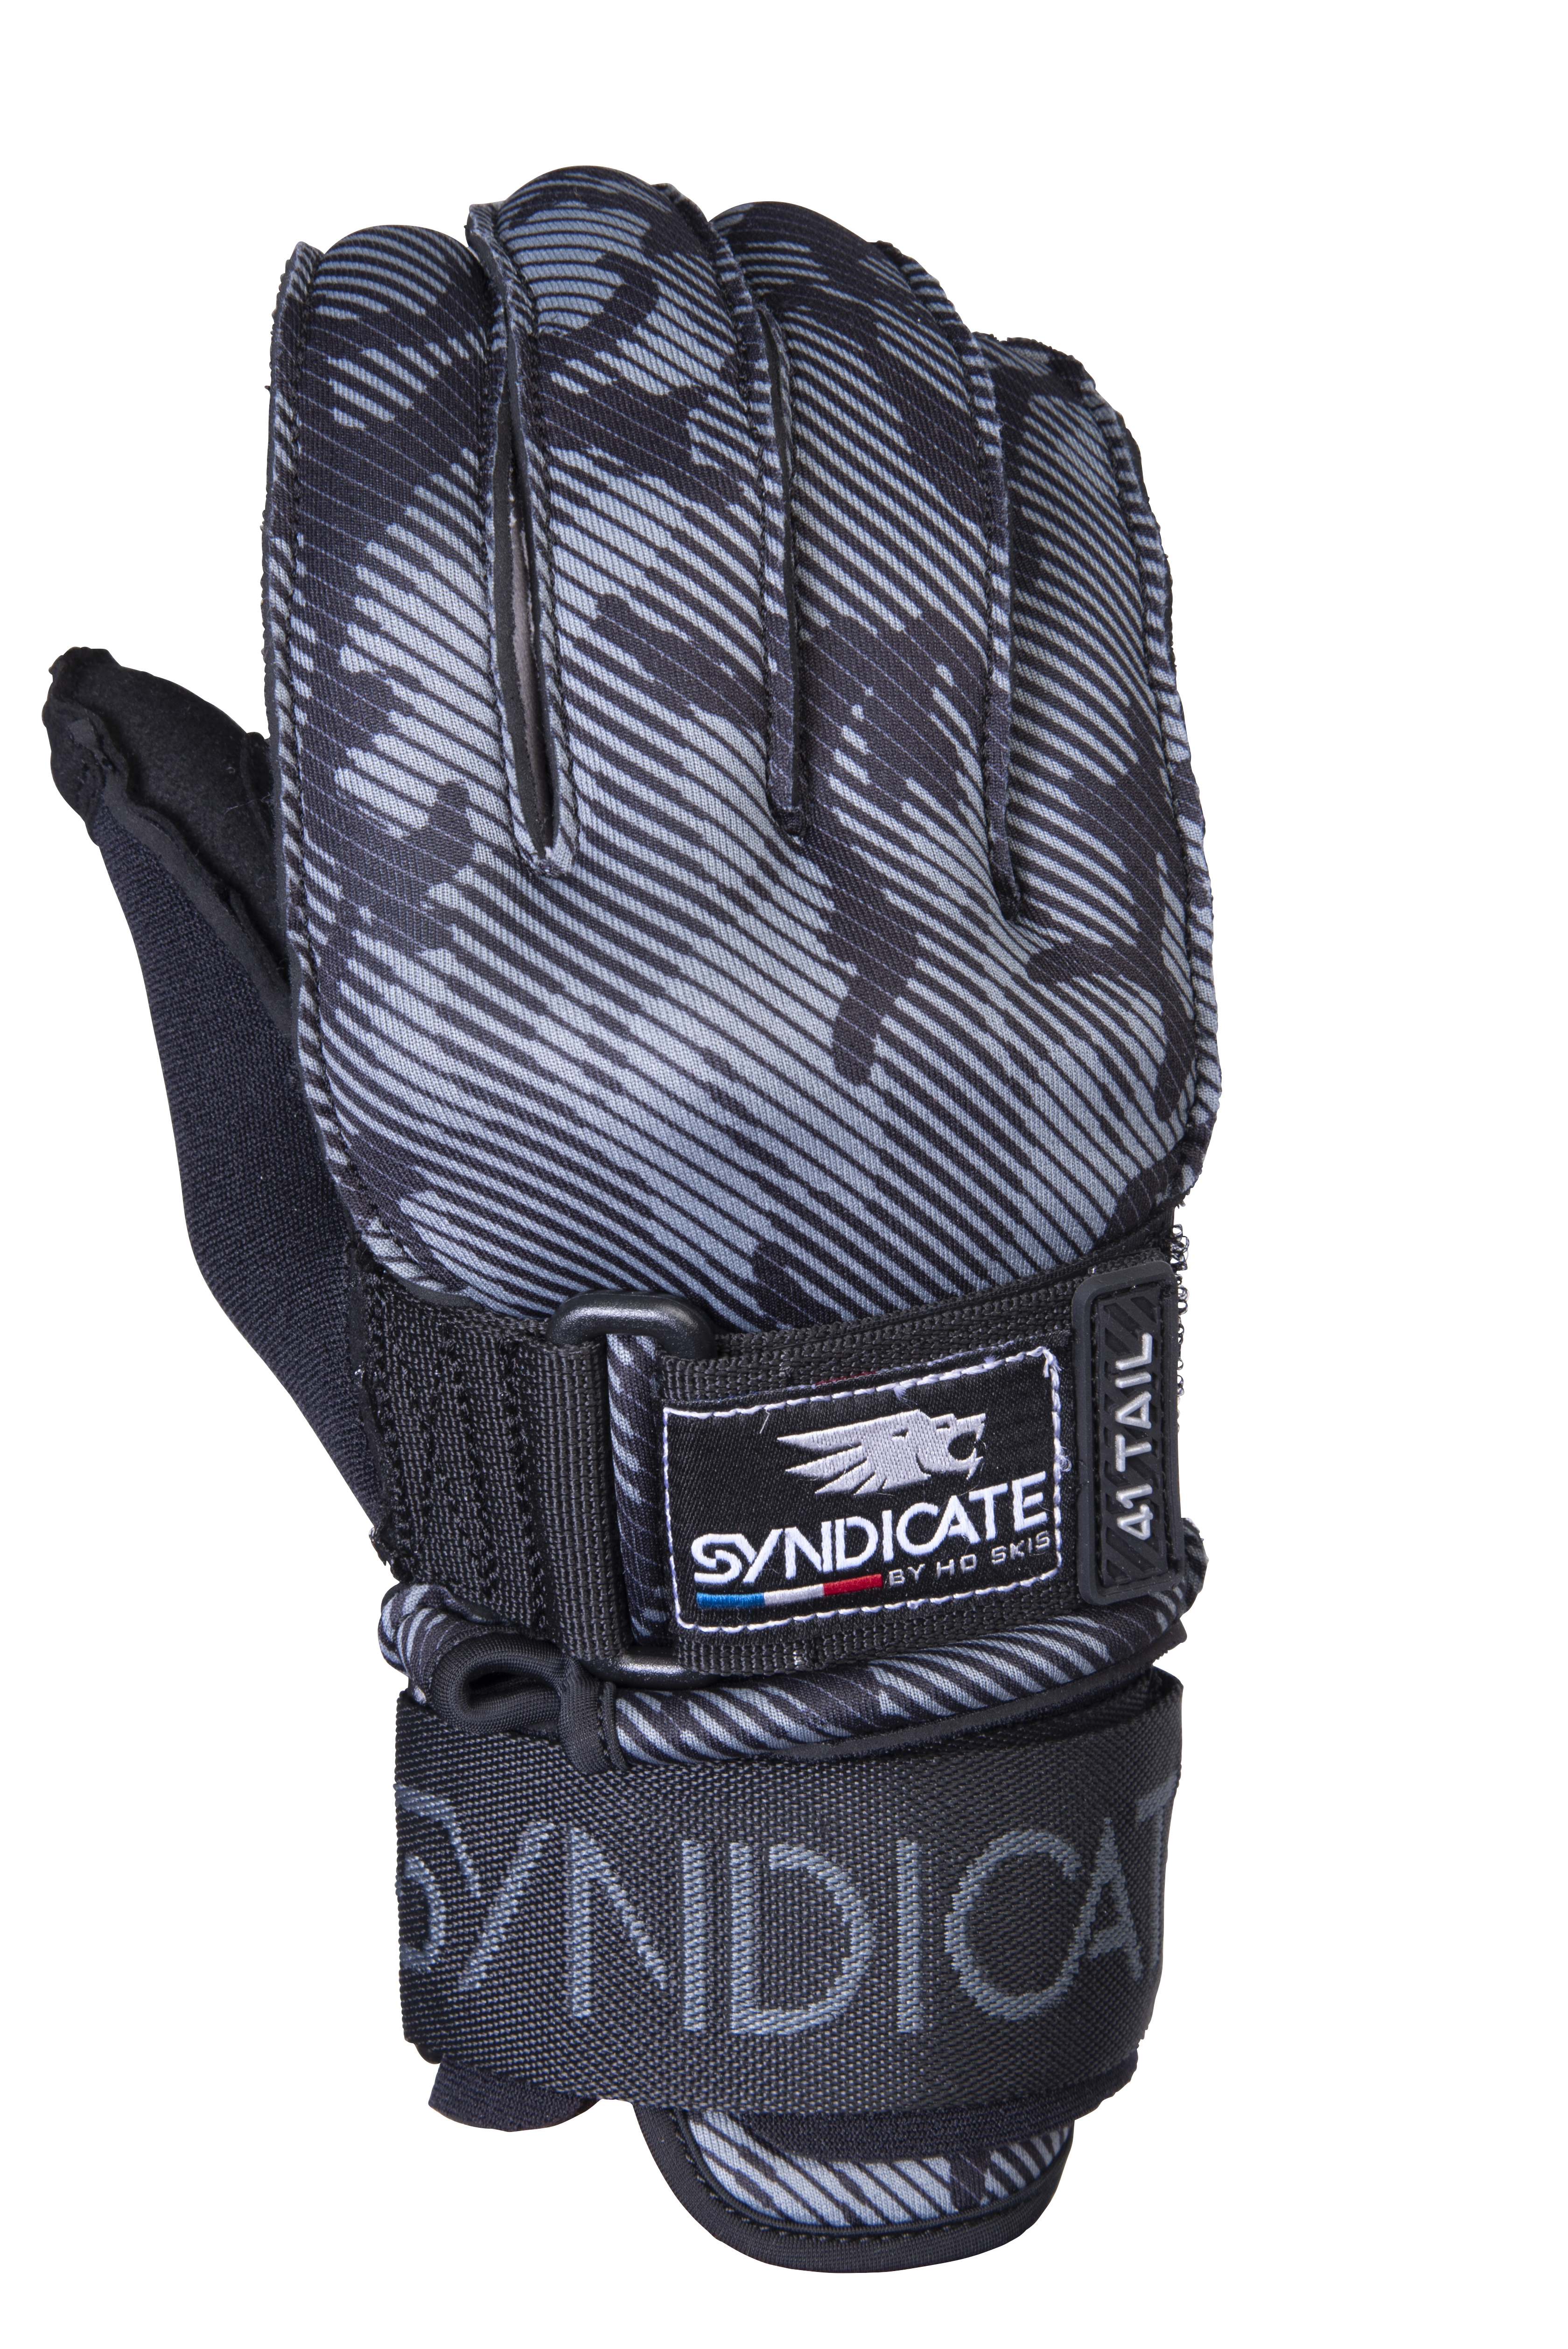 SYNDICATE 41 TAIL INSIDE-OUT GLOVE HO SPORTS 2019